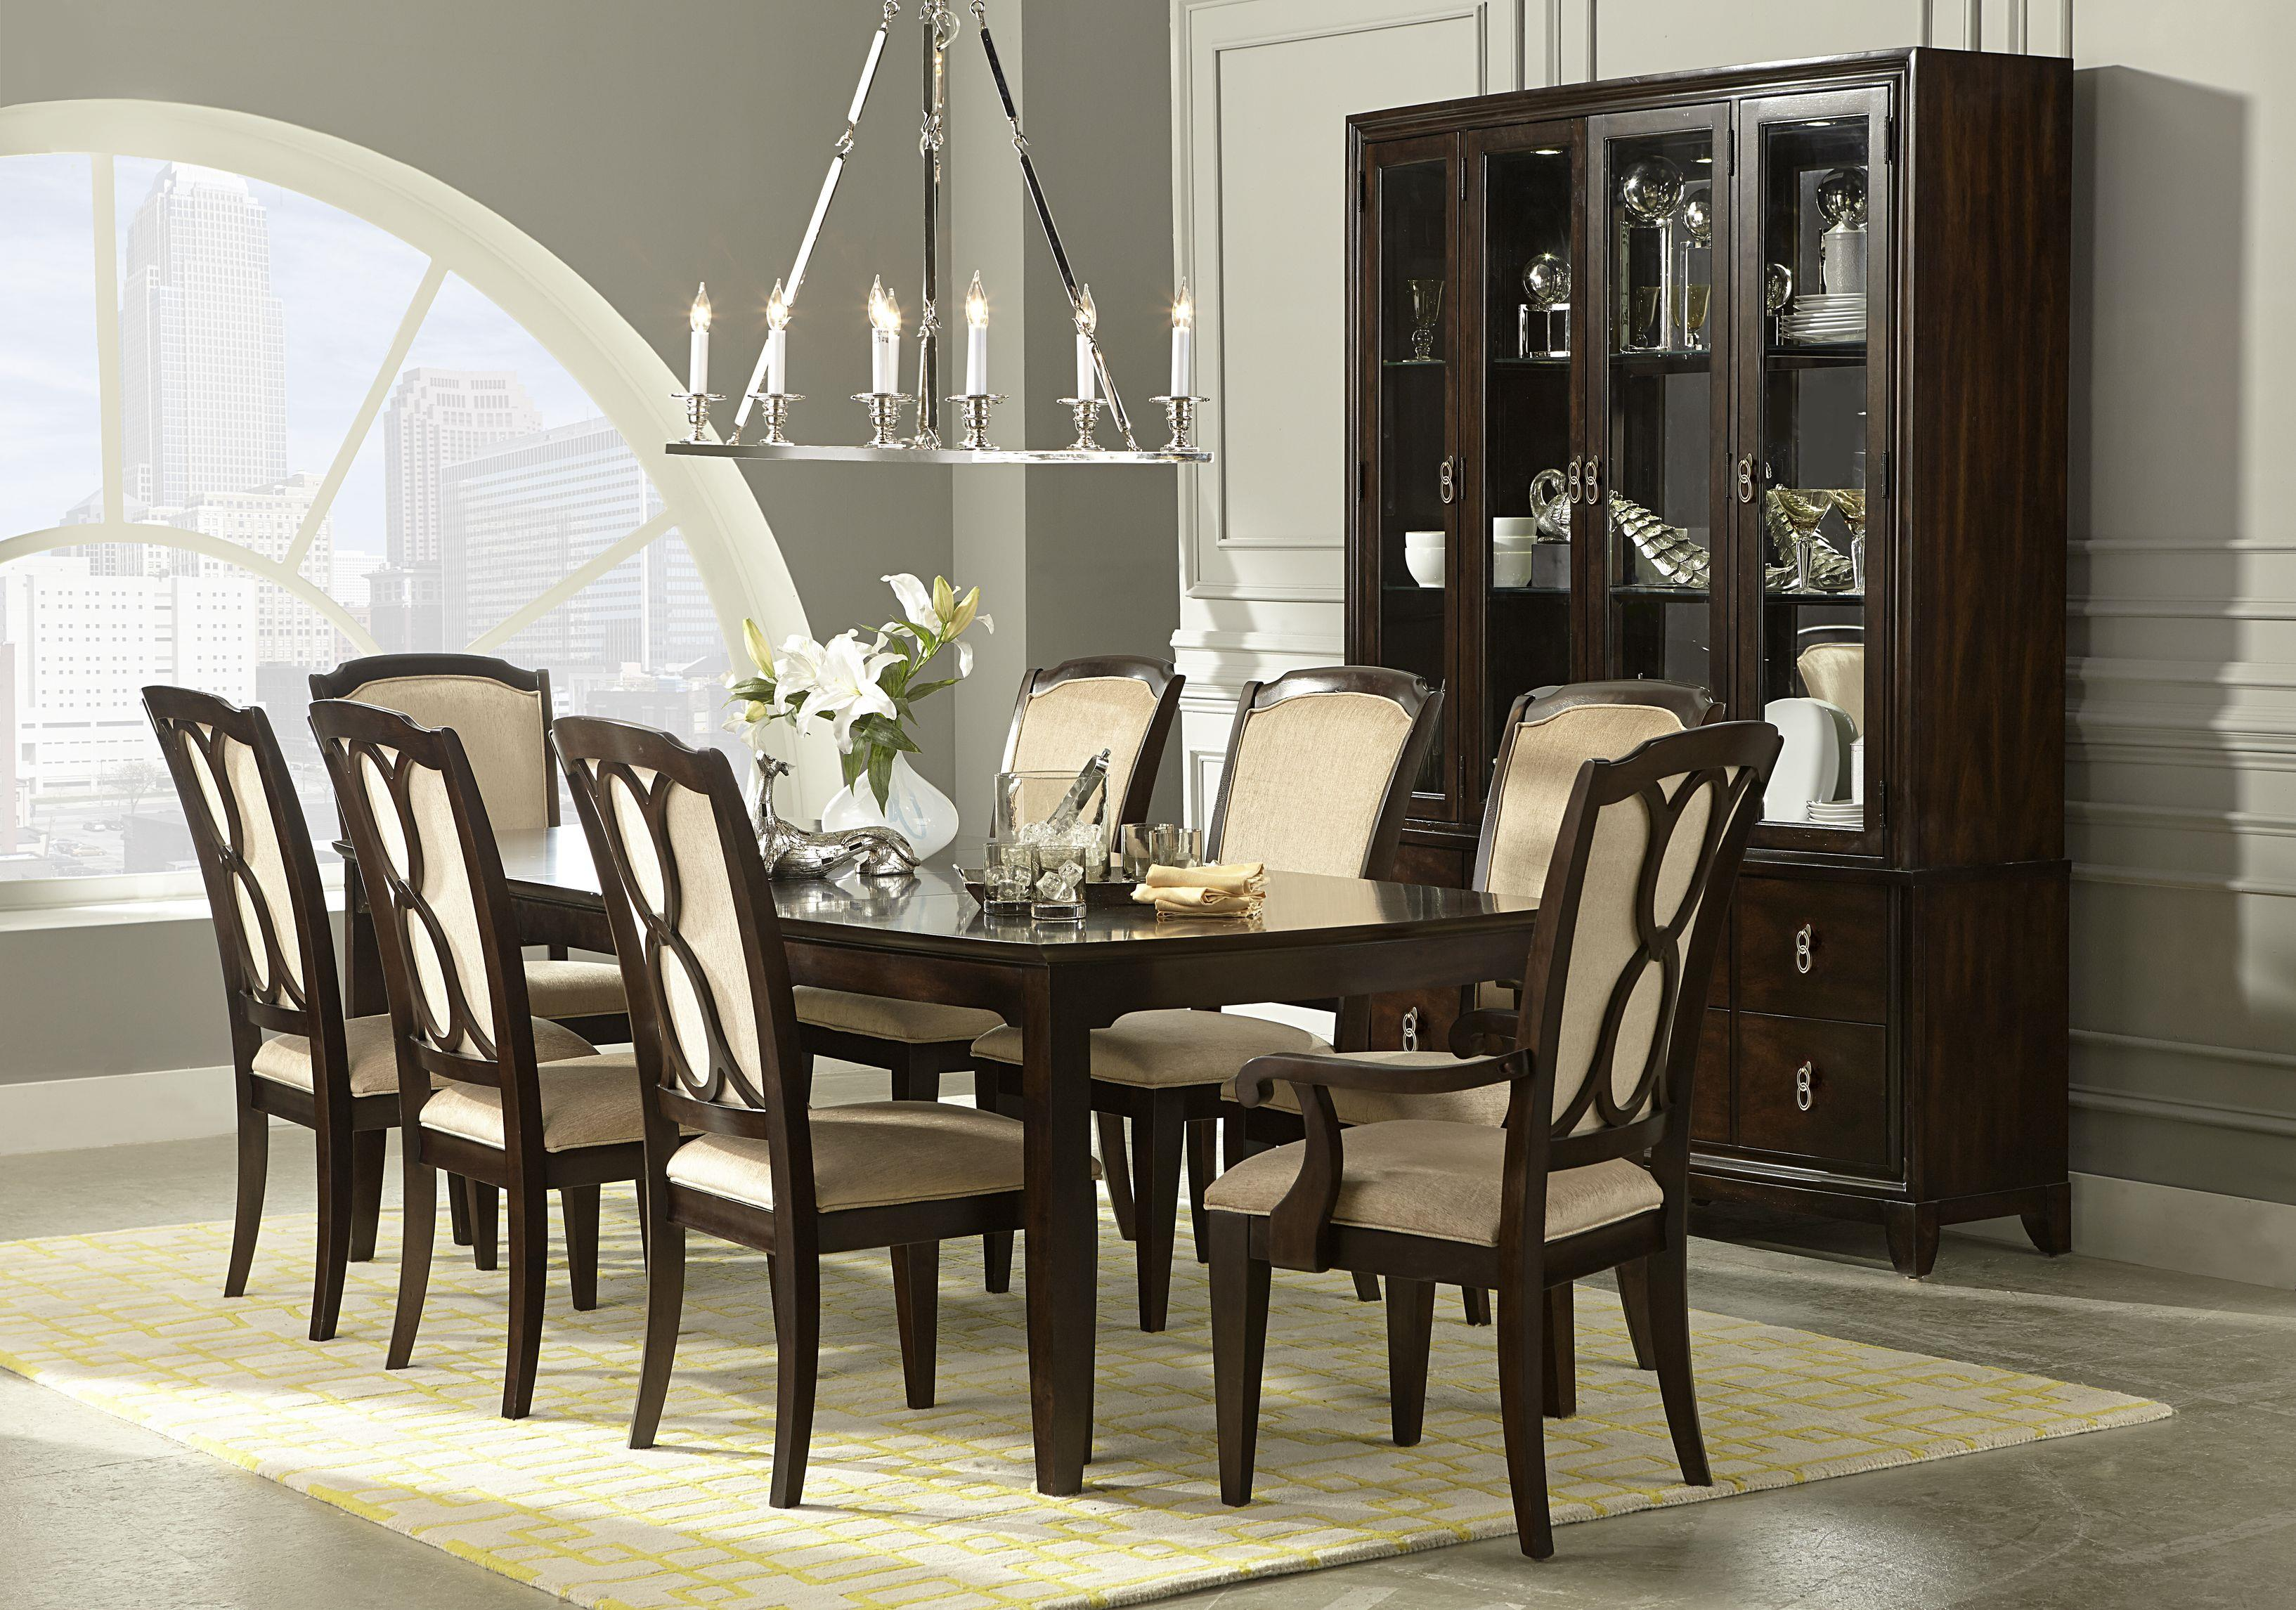 Legacy Dining Room Furniture Scarlett 7 Piece Dining Table Amp Chair Set Rotmans Dining 7 Or